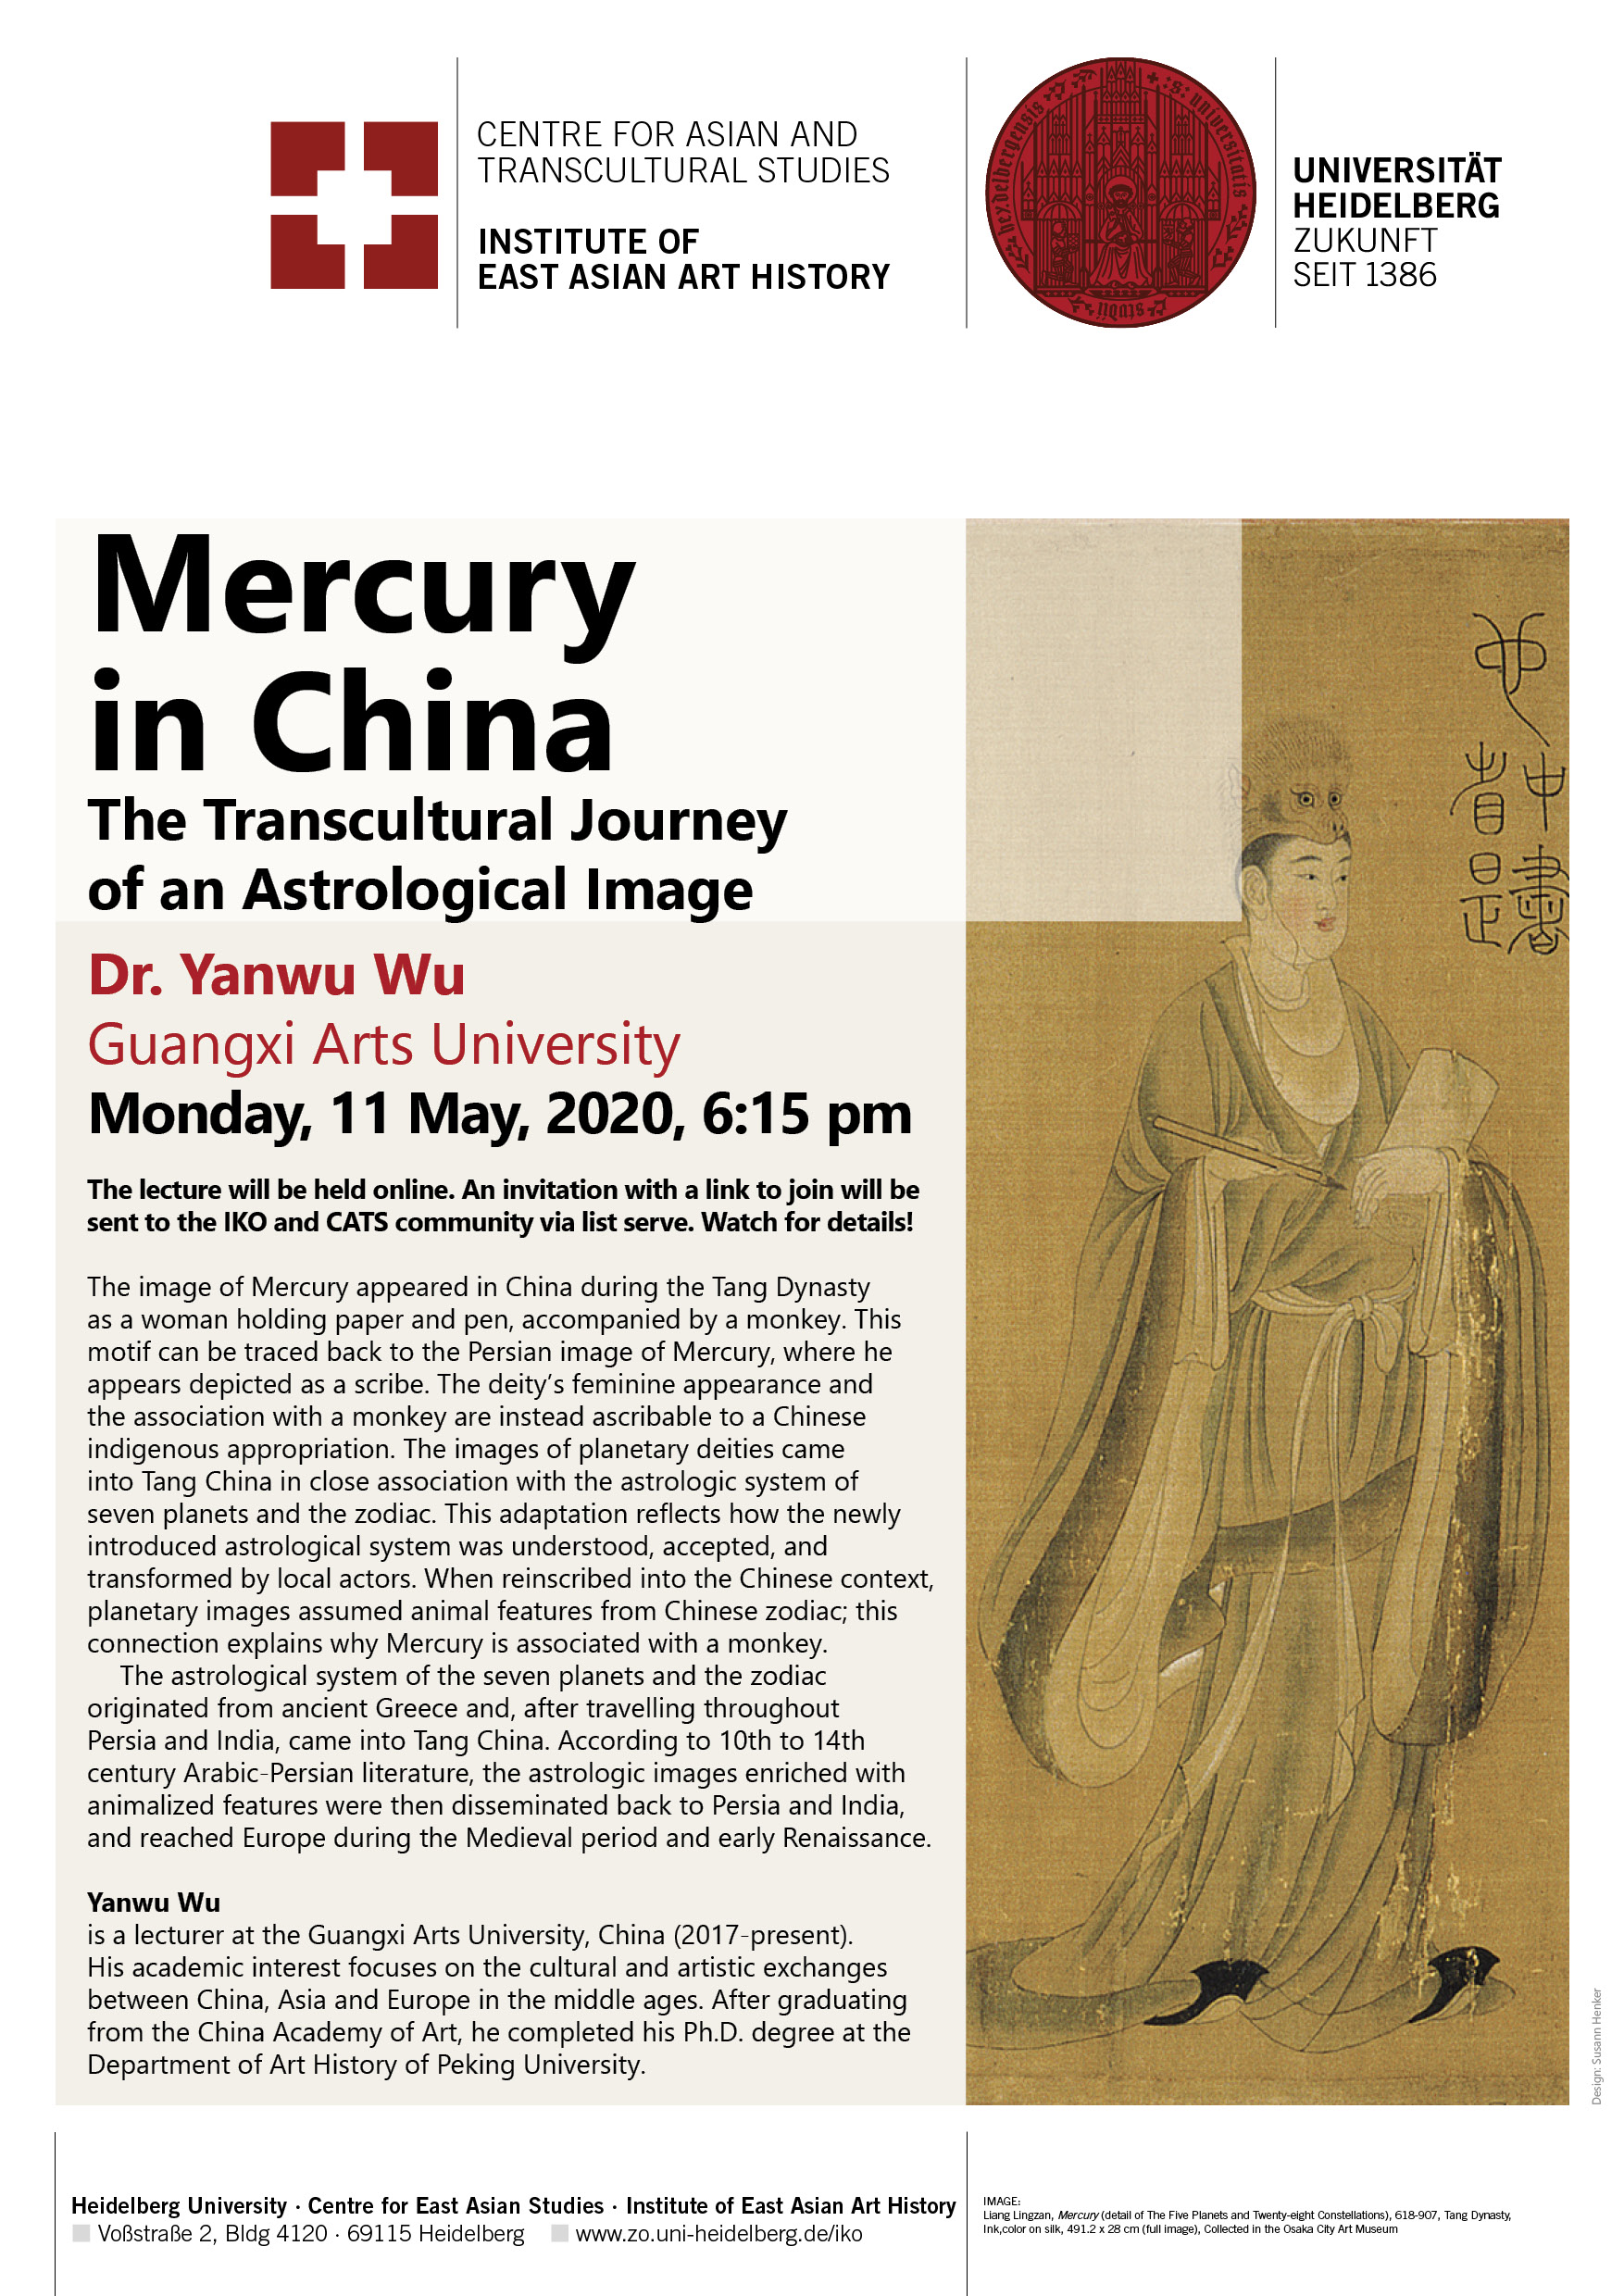 Mercury in China